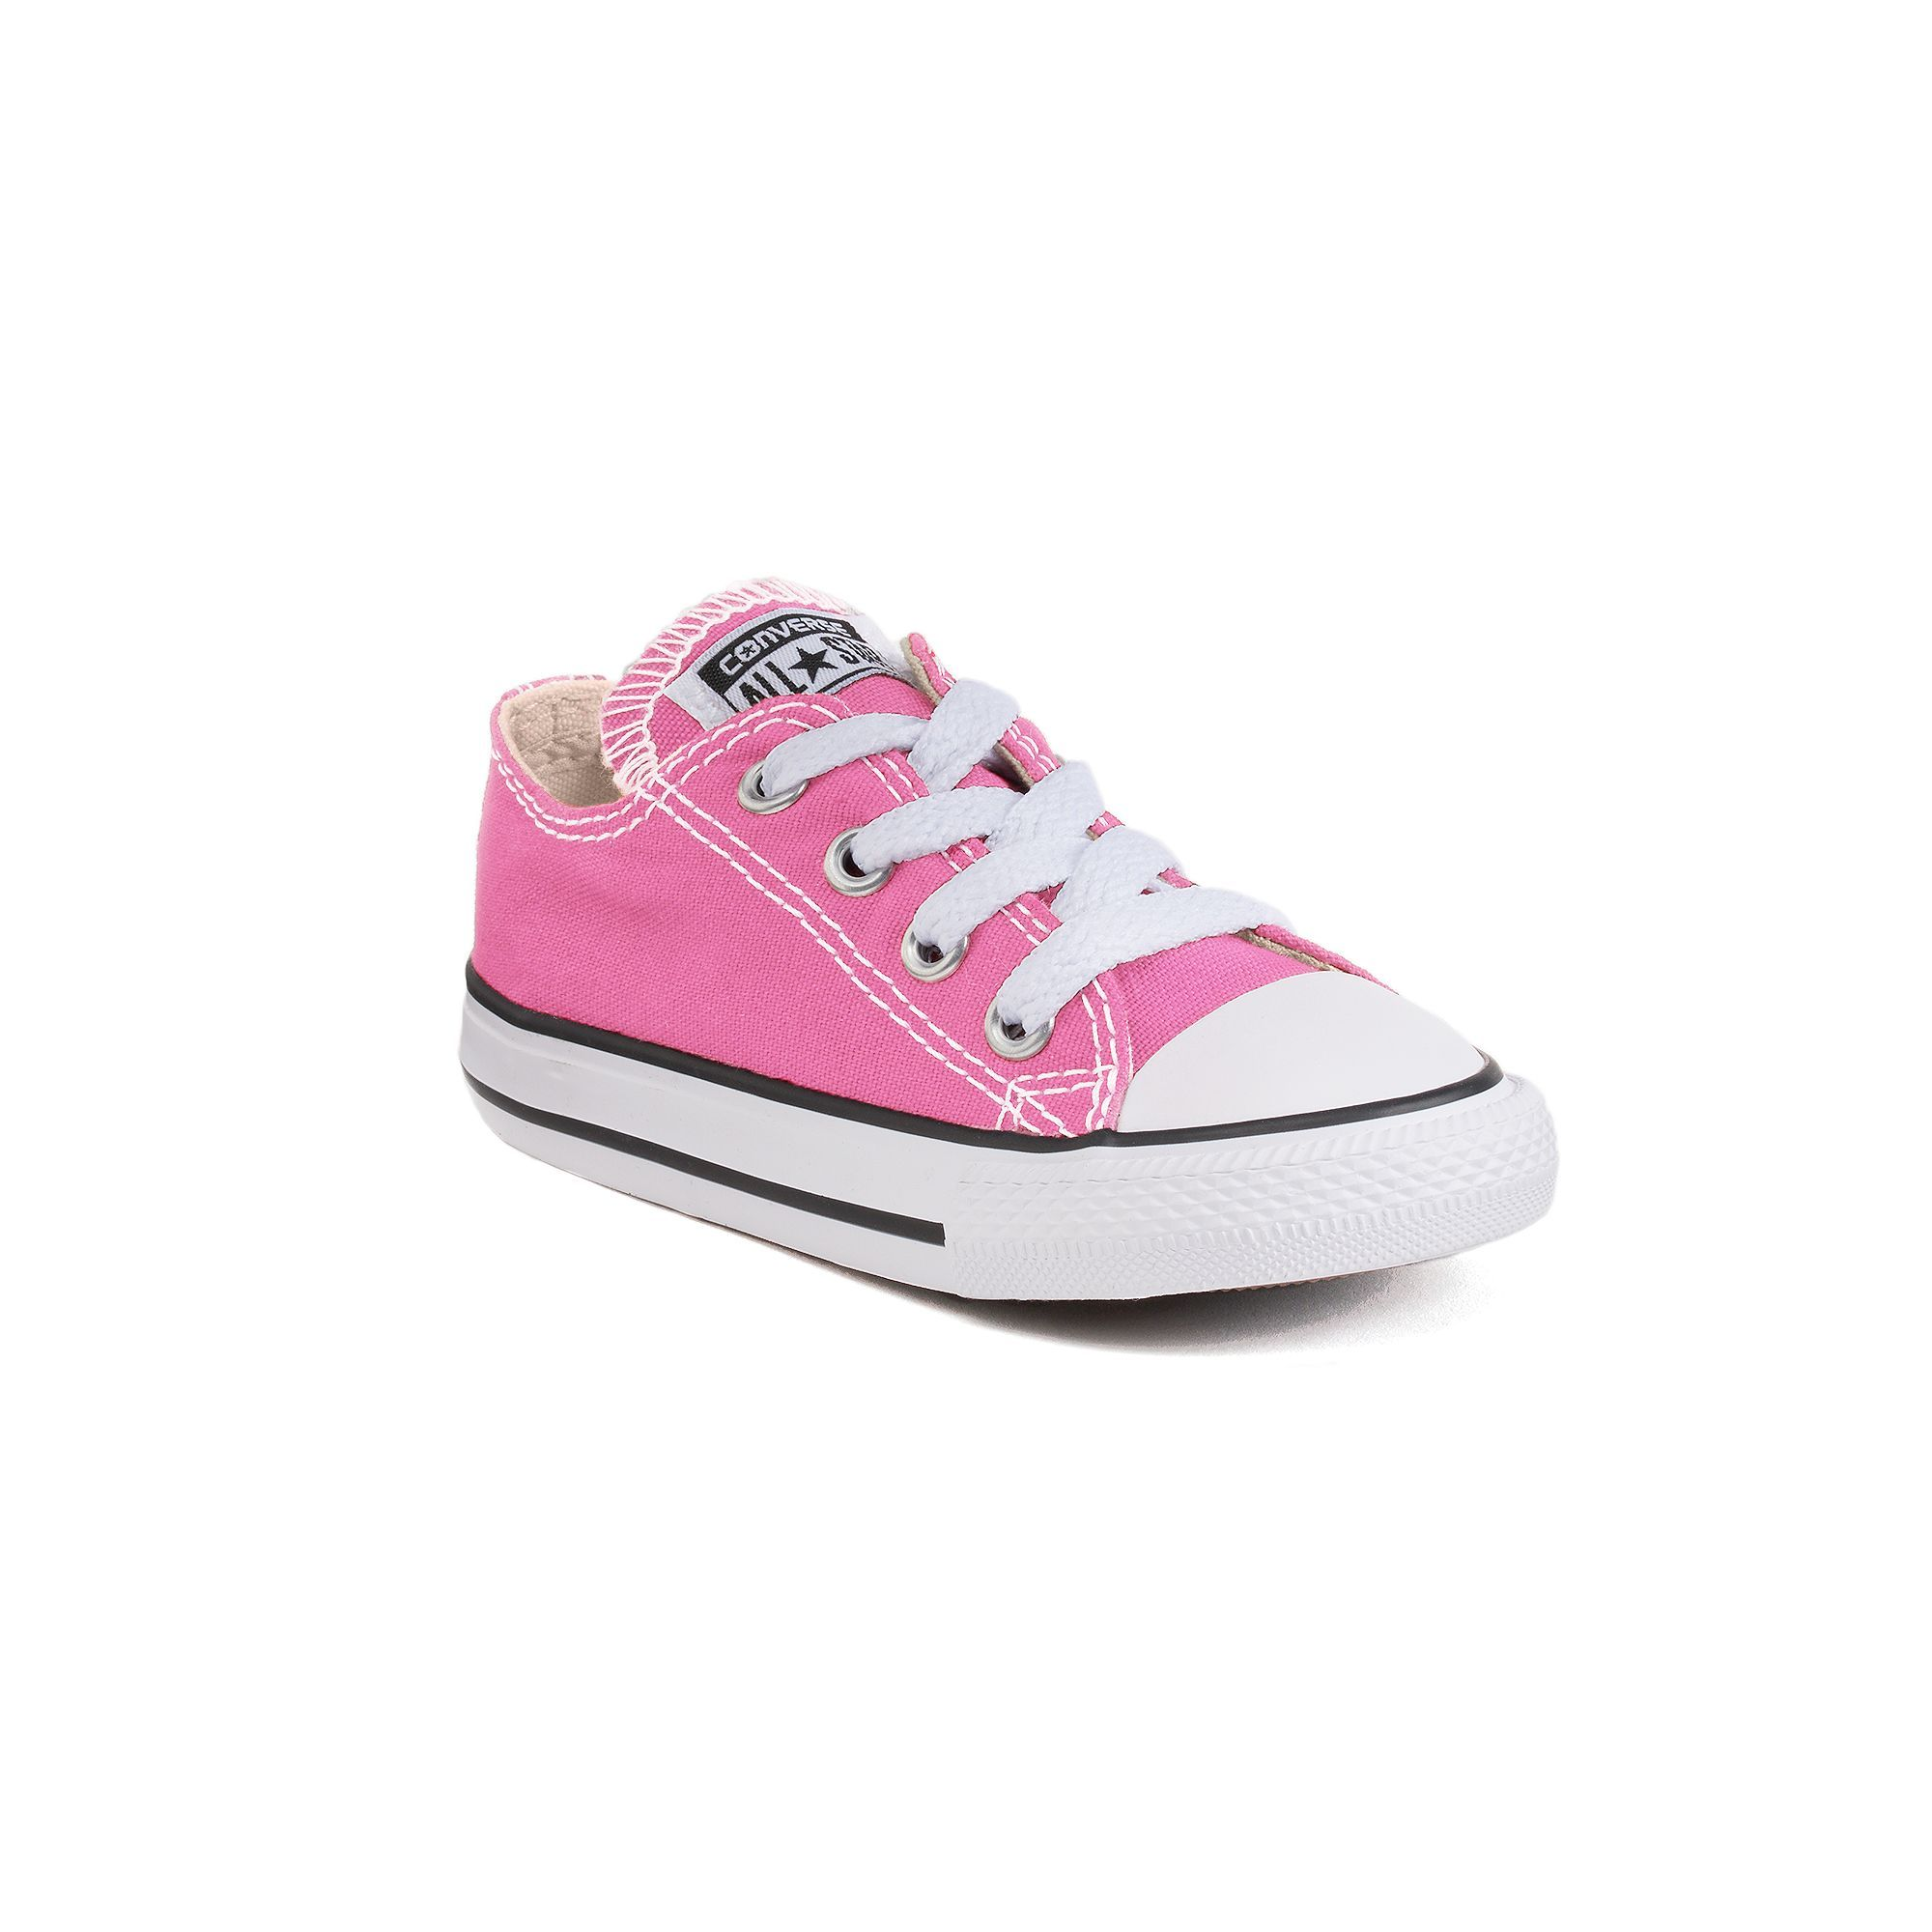 3b44be167117 Baby   Toddler Converse Chuck Taylor All Star Sneakers